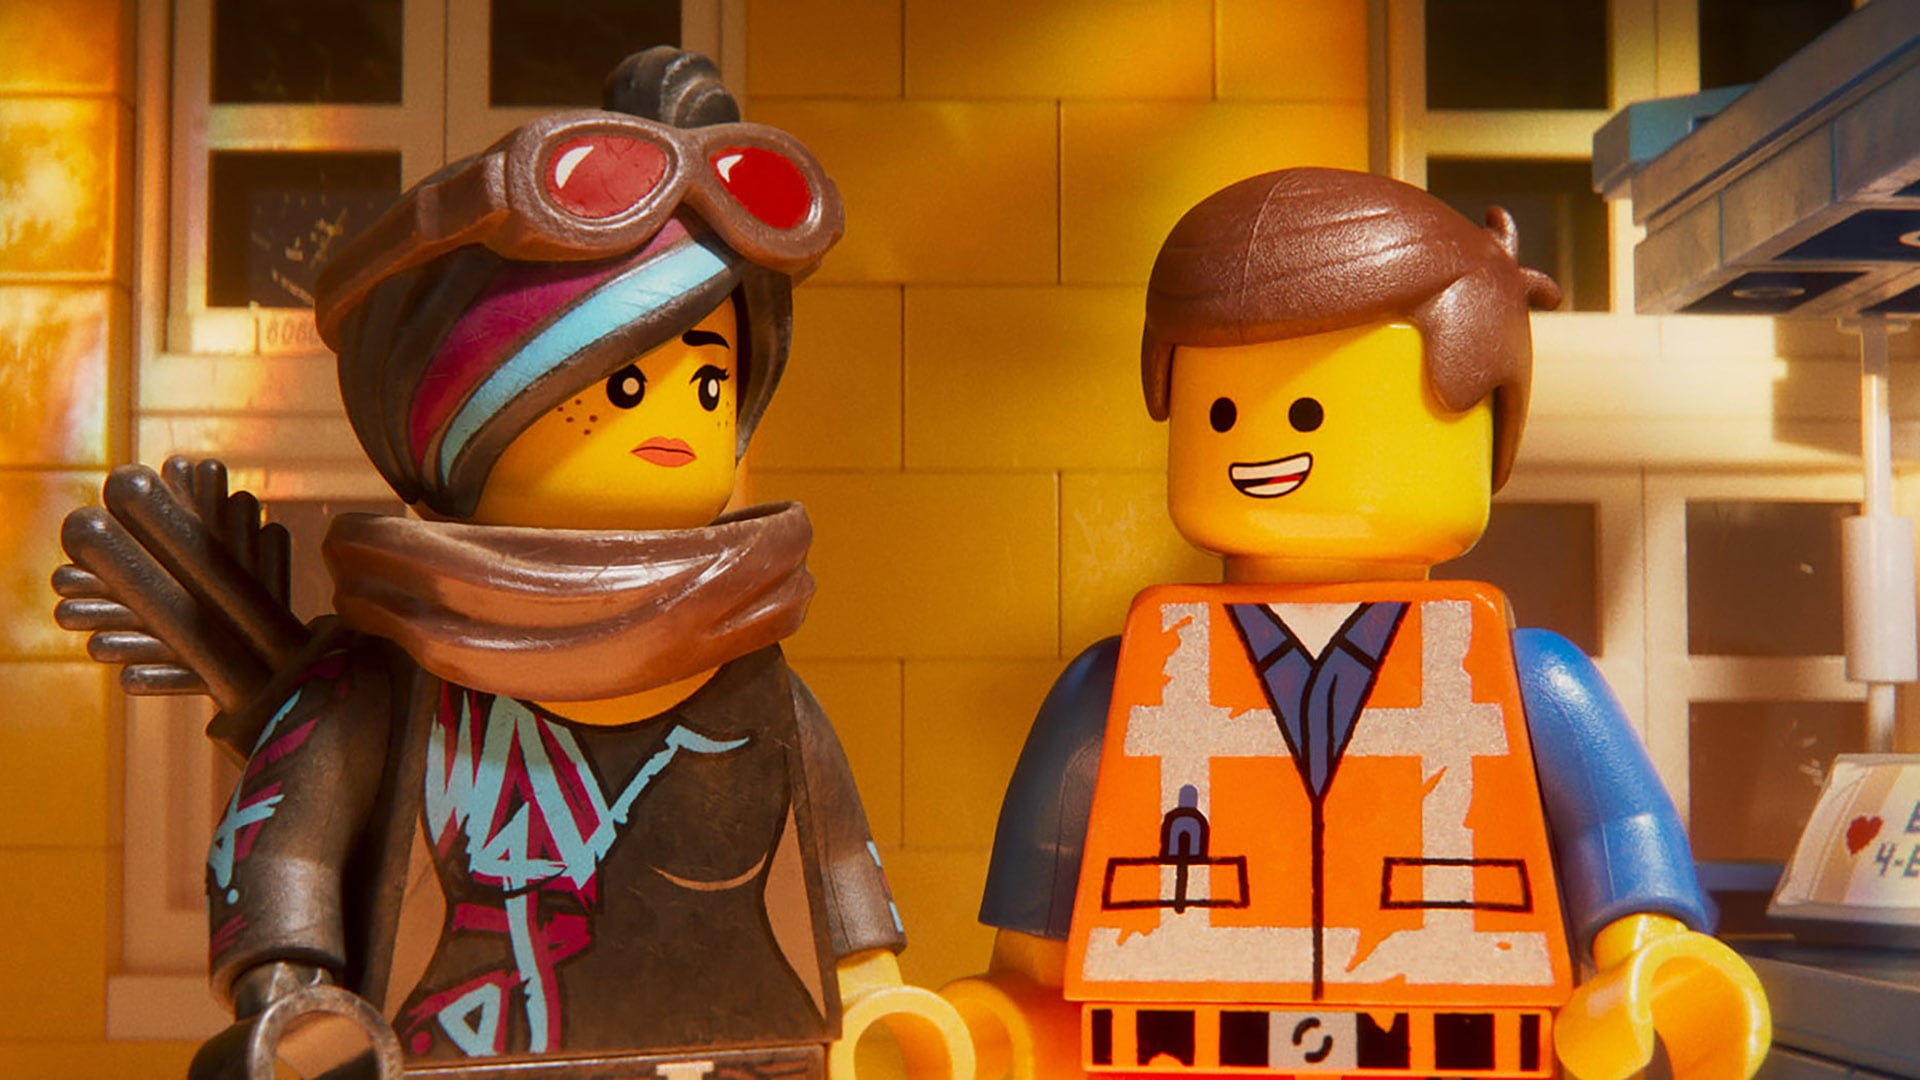 The Lego Movie 2: The Second Part backdrop